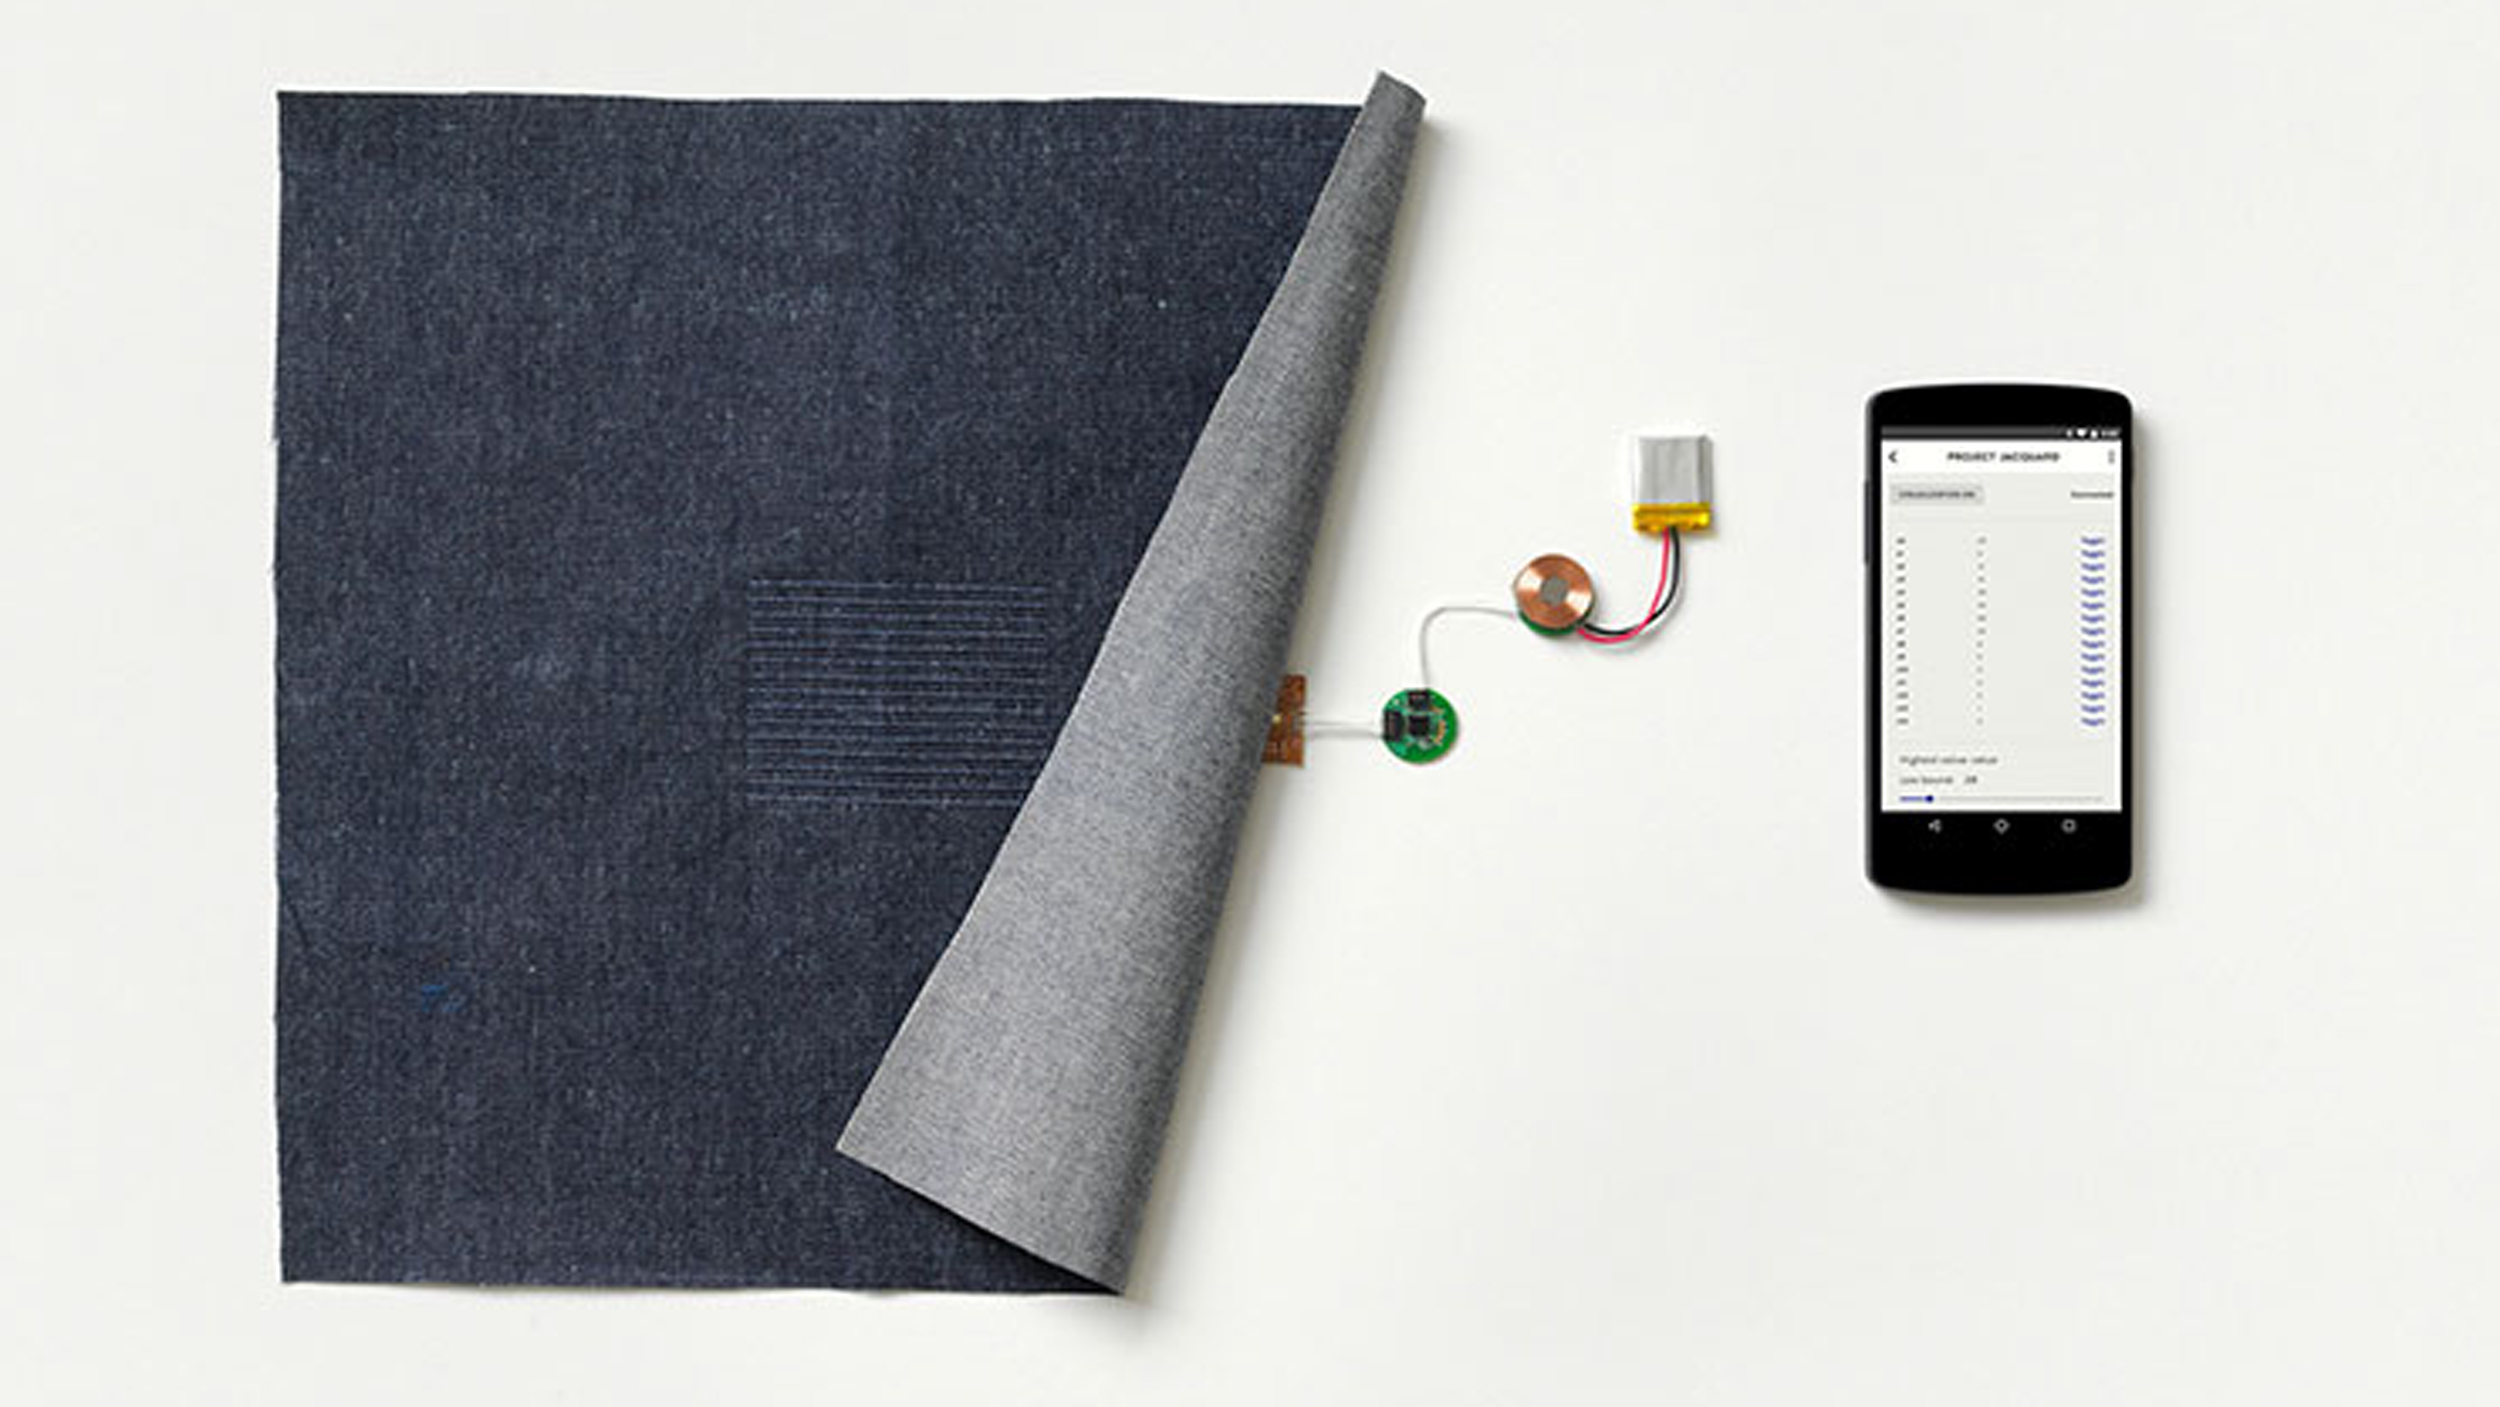 f80d19ff6a5 'Smart jeans' and beyond: Google and Levi's pioneer new frontier of  wearable tech